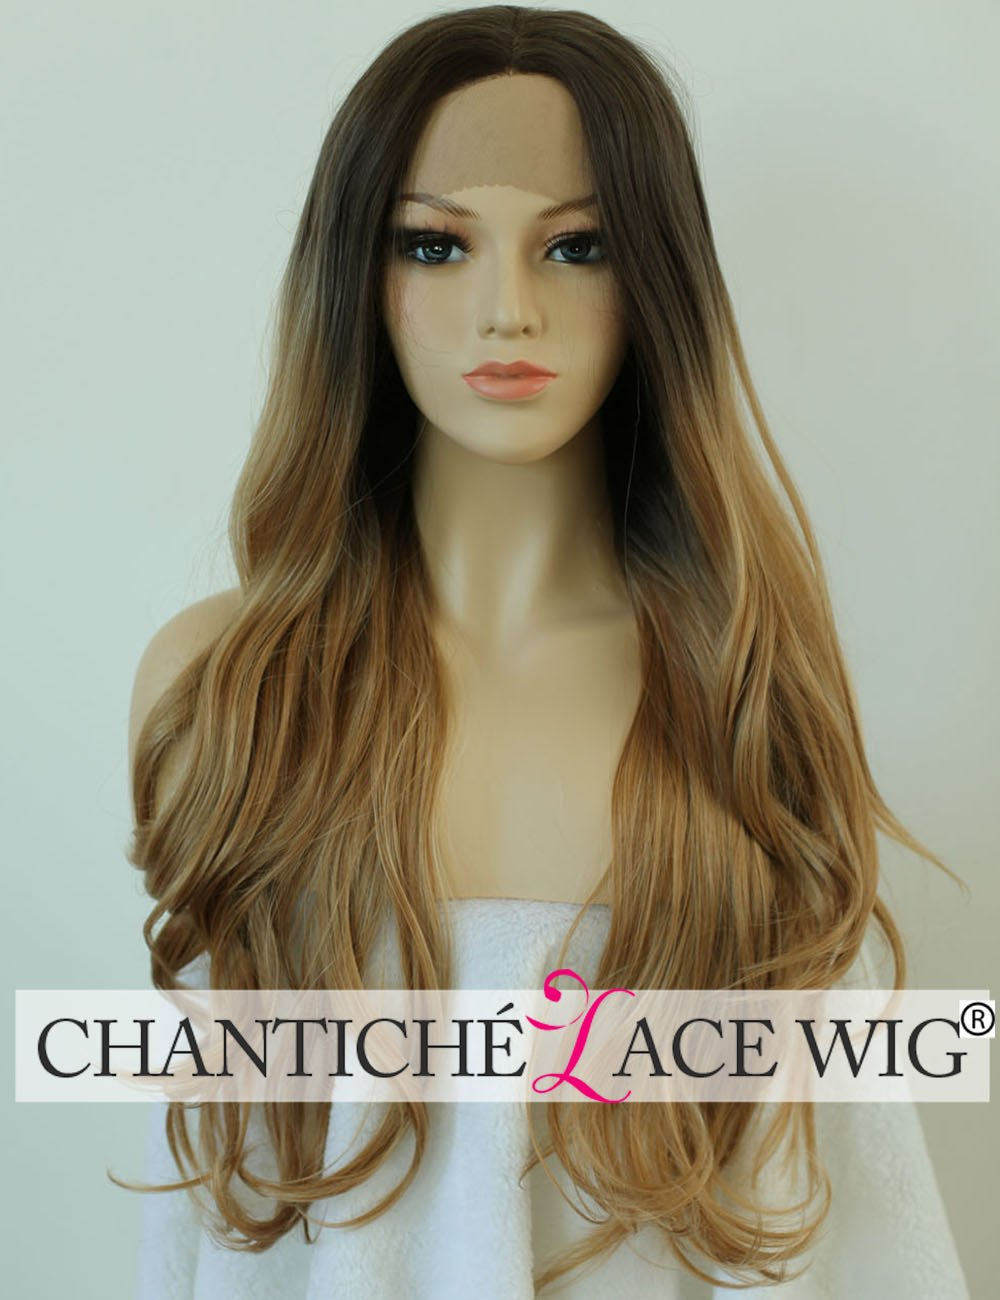 Chantiche Halloween Wavy Wigs for Women Long Synthetic Hair Ombre Brown Roots Blonde Lace Front Wig uk for Women High Quality Heat Resistant Fiber Half Hand Tied 24 inches Chantiche Lace Wig